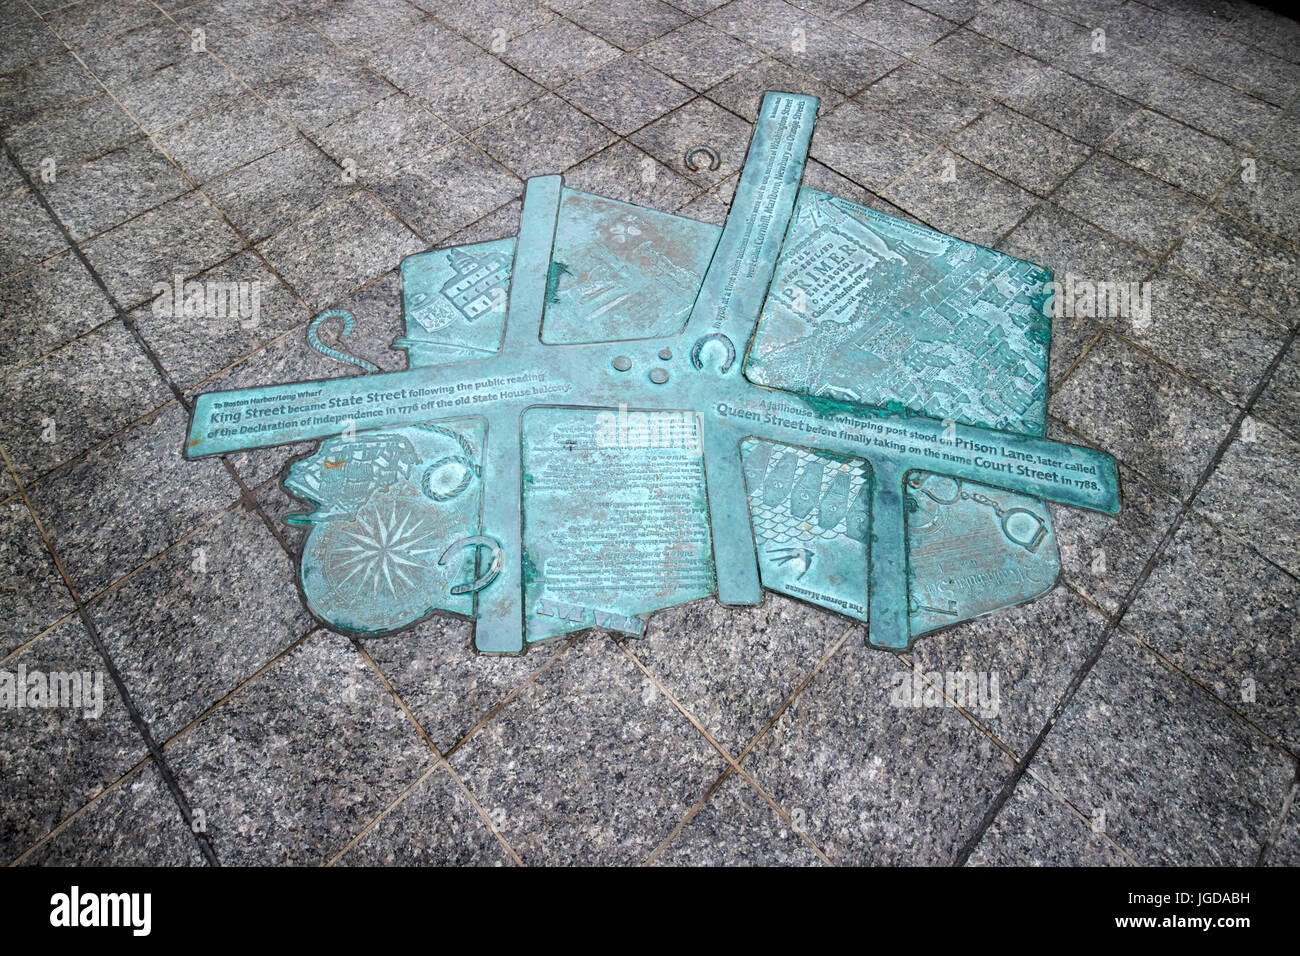 metal plaque in sidewalk on state street Boston showing the pre declaration of independence colonnial street names - Stock Image